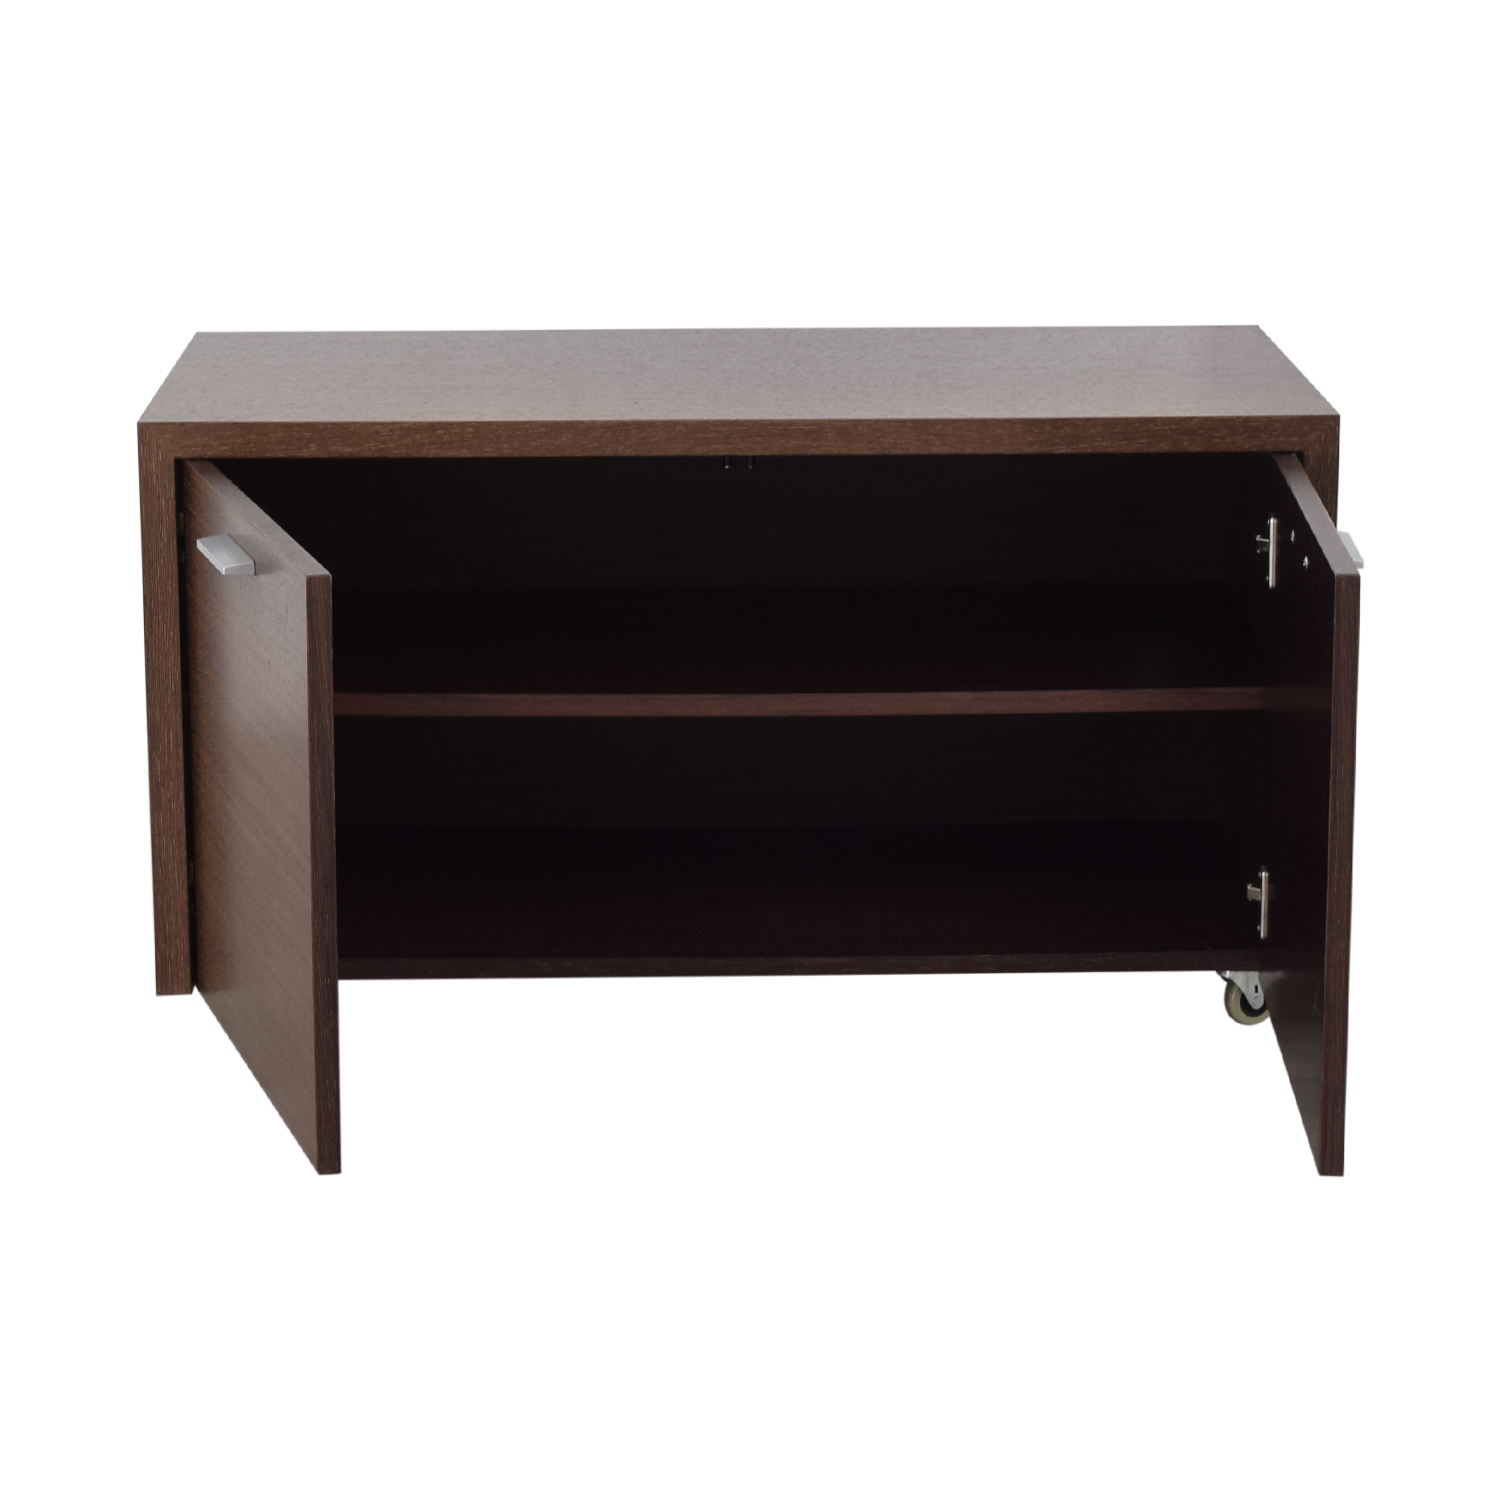 Design Within Reach Design Within Reach Credenza Sideboard dimensions